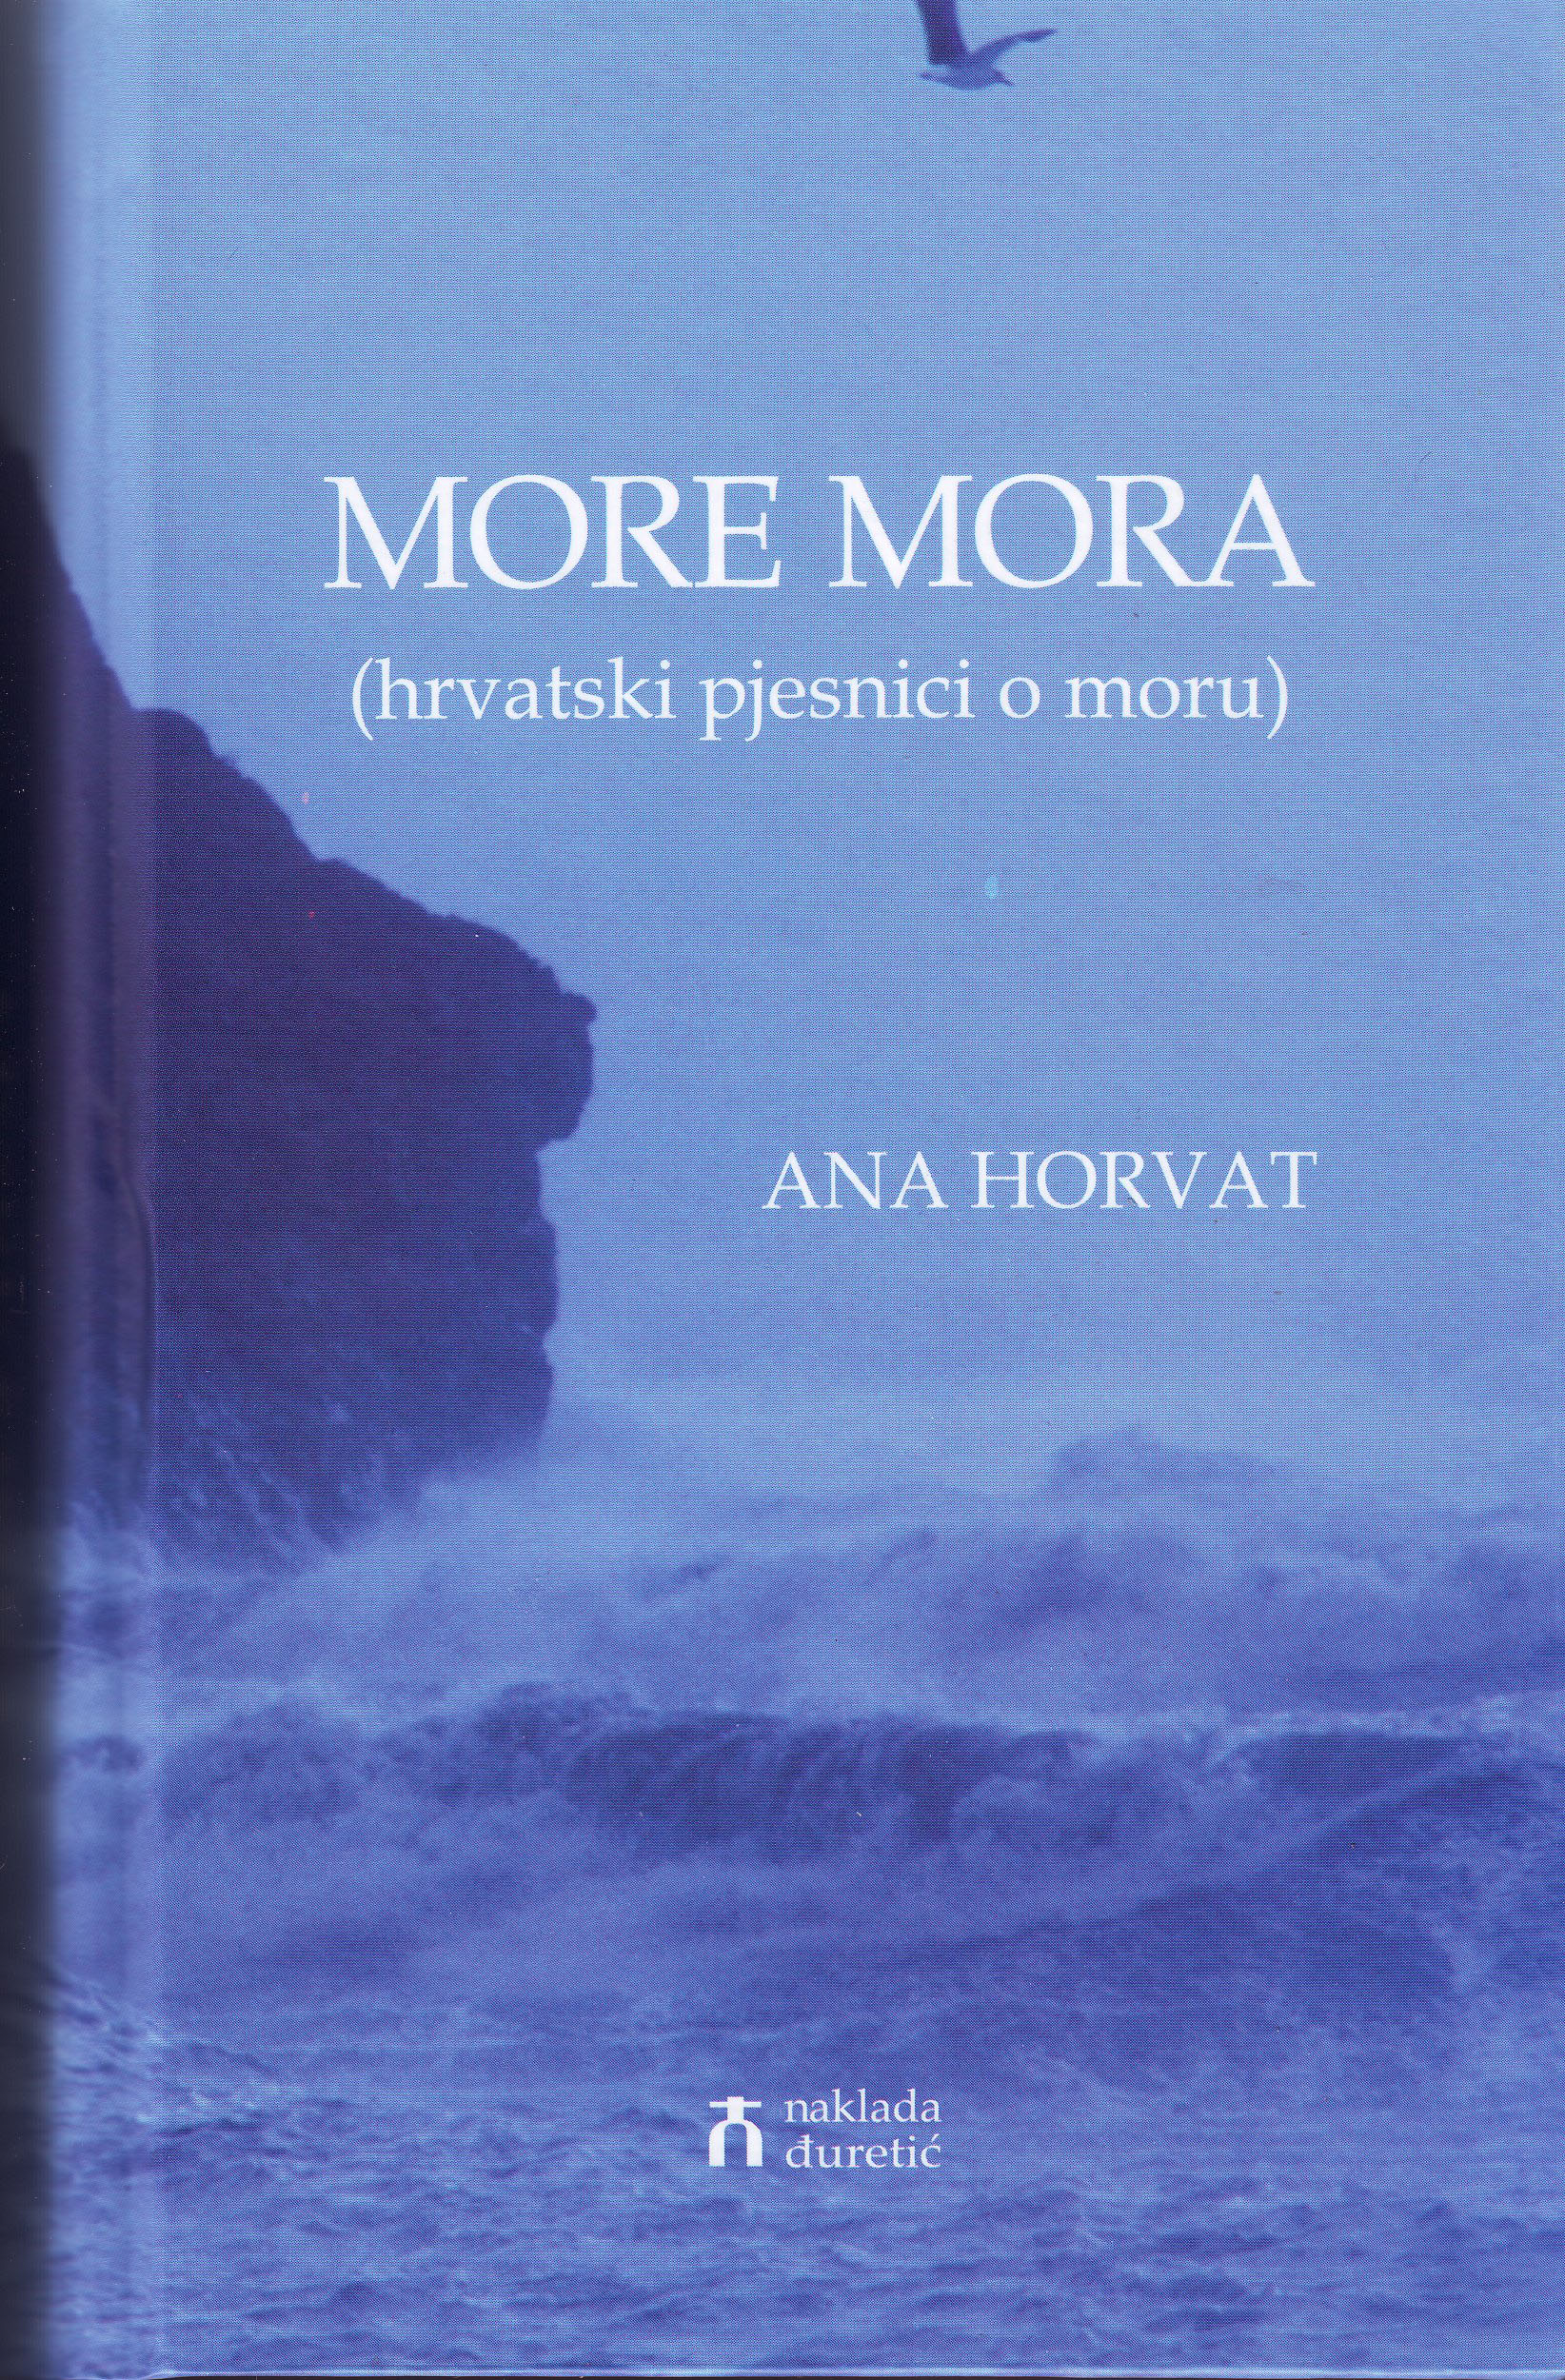 More mora | Ana Horvat Poetry